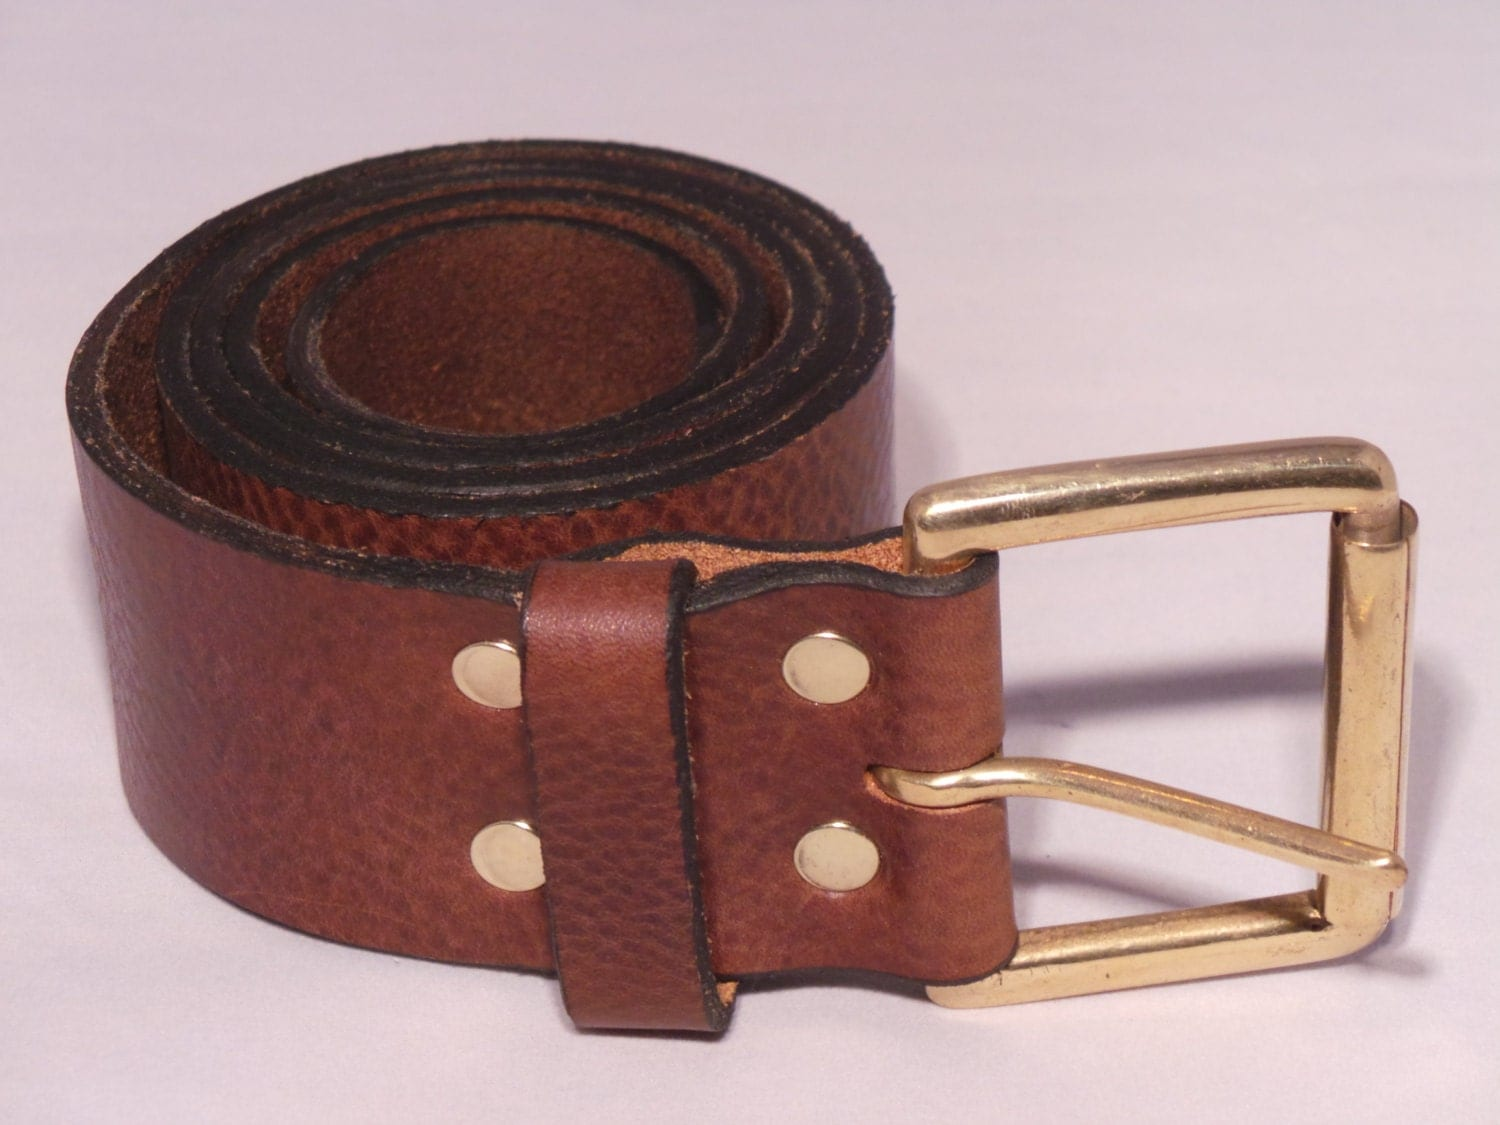 2 inch wide leather jean belt for sale with solid brass